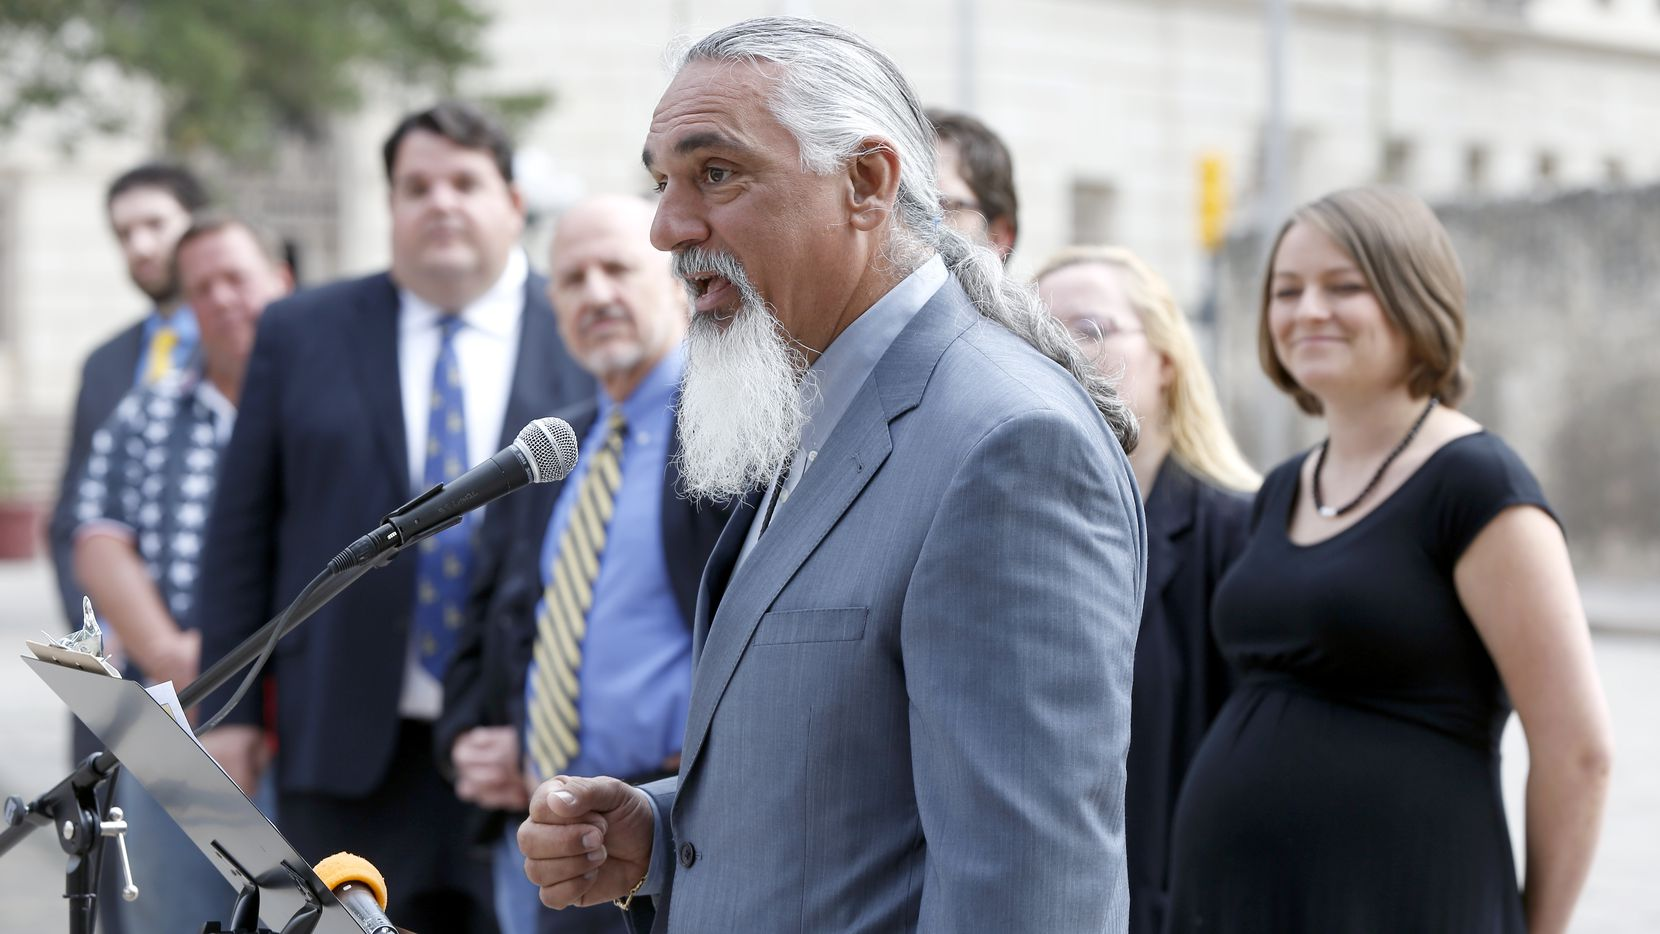 Jamie Balagia, who is going to trial in Sherman, is accused of shaking down Colombian drug lords. Here he speaks as a Libertarian party candidate for Texas attorney general on May 1, 2014 in front of the Alamo.